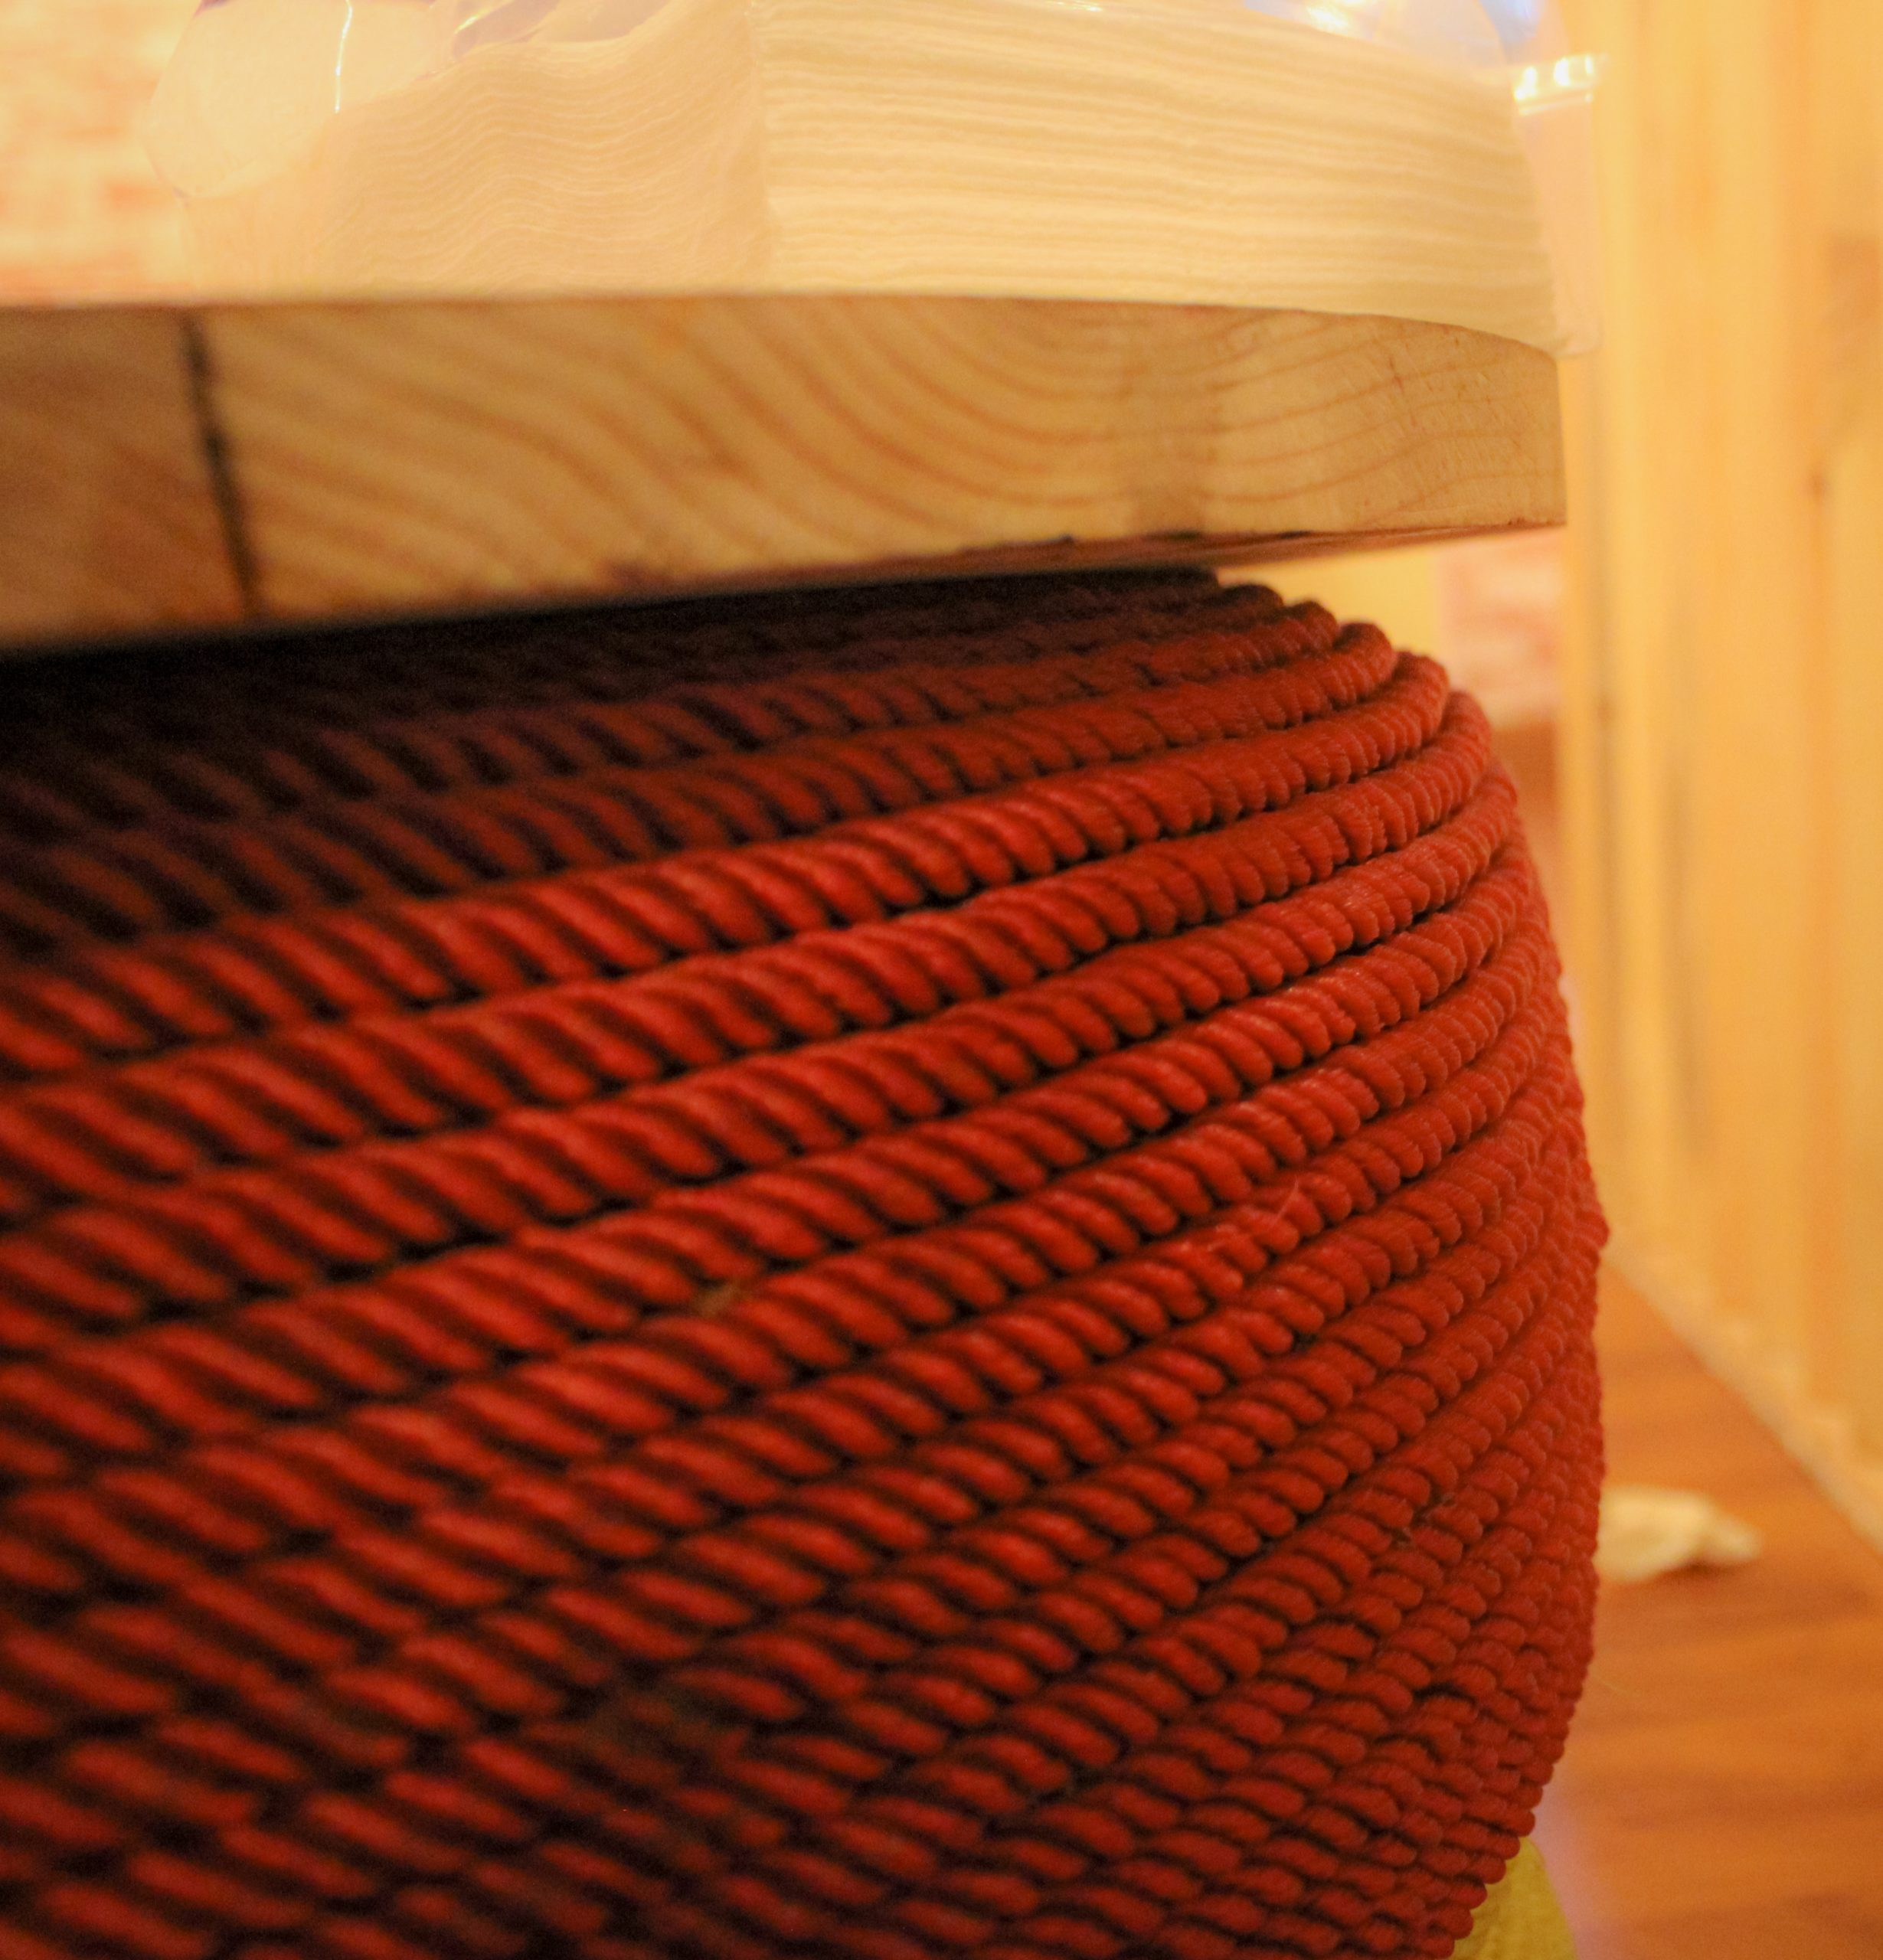 Red rope on wood